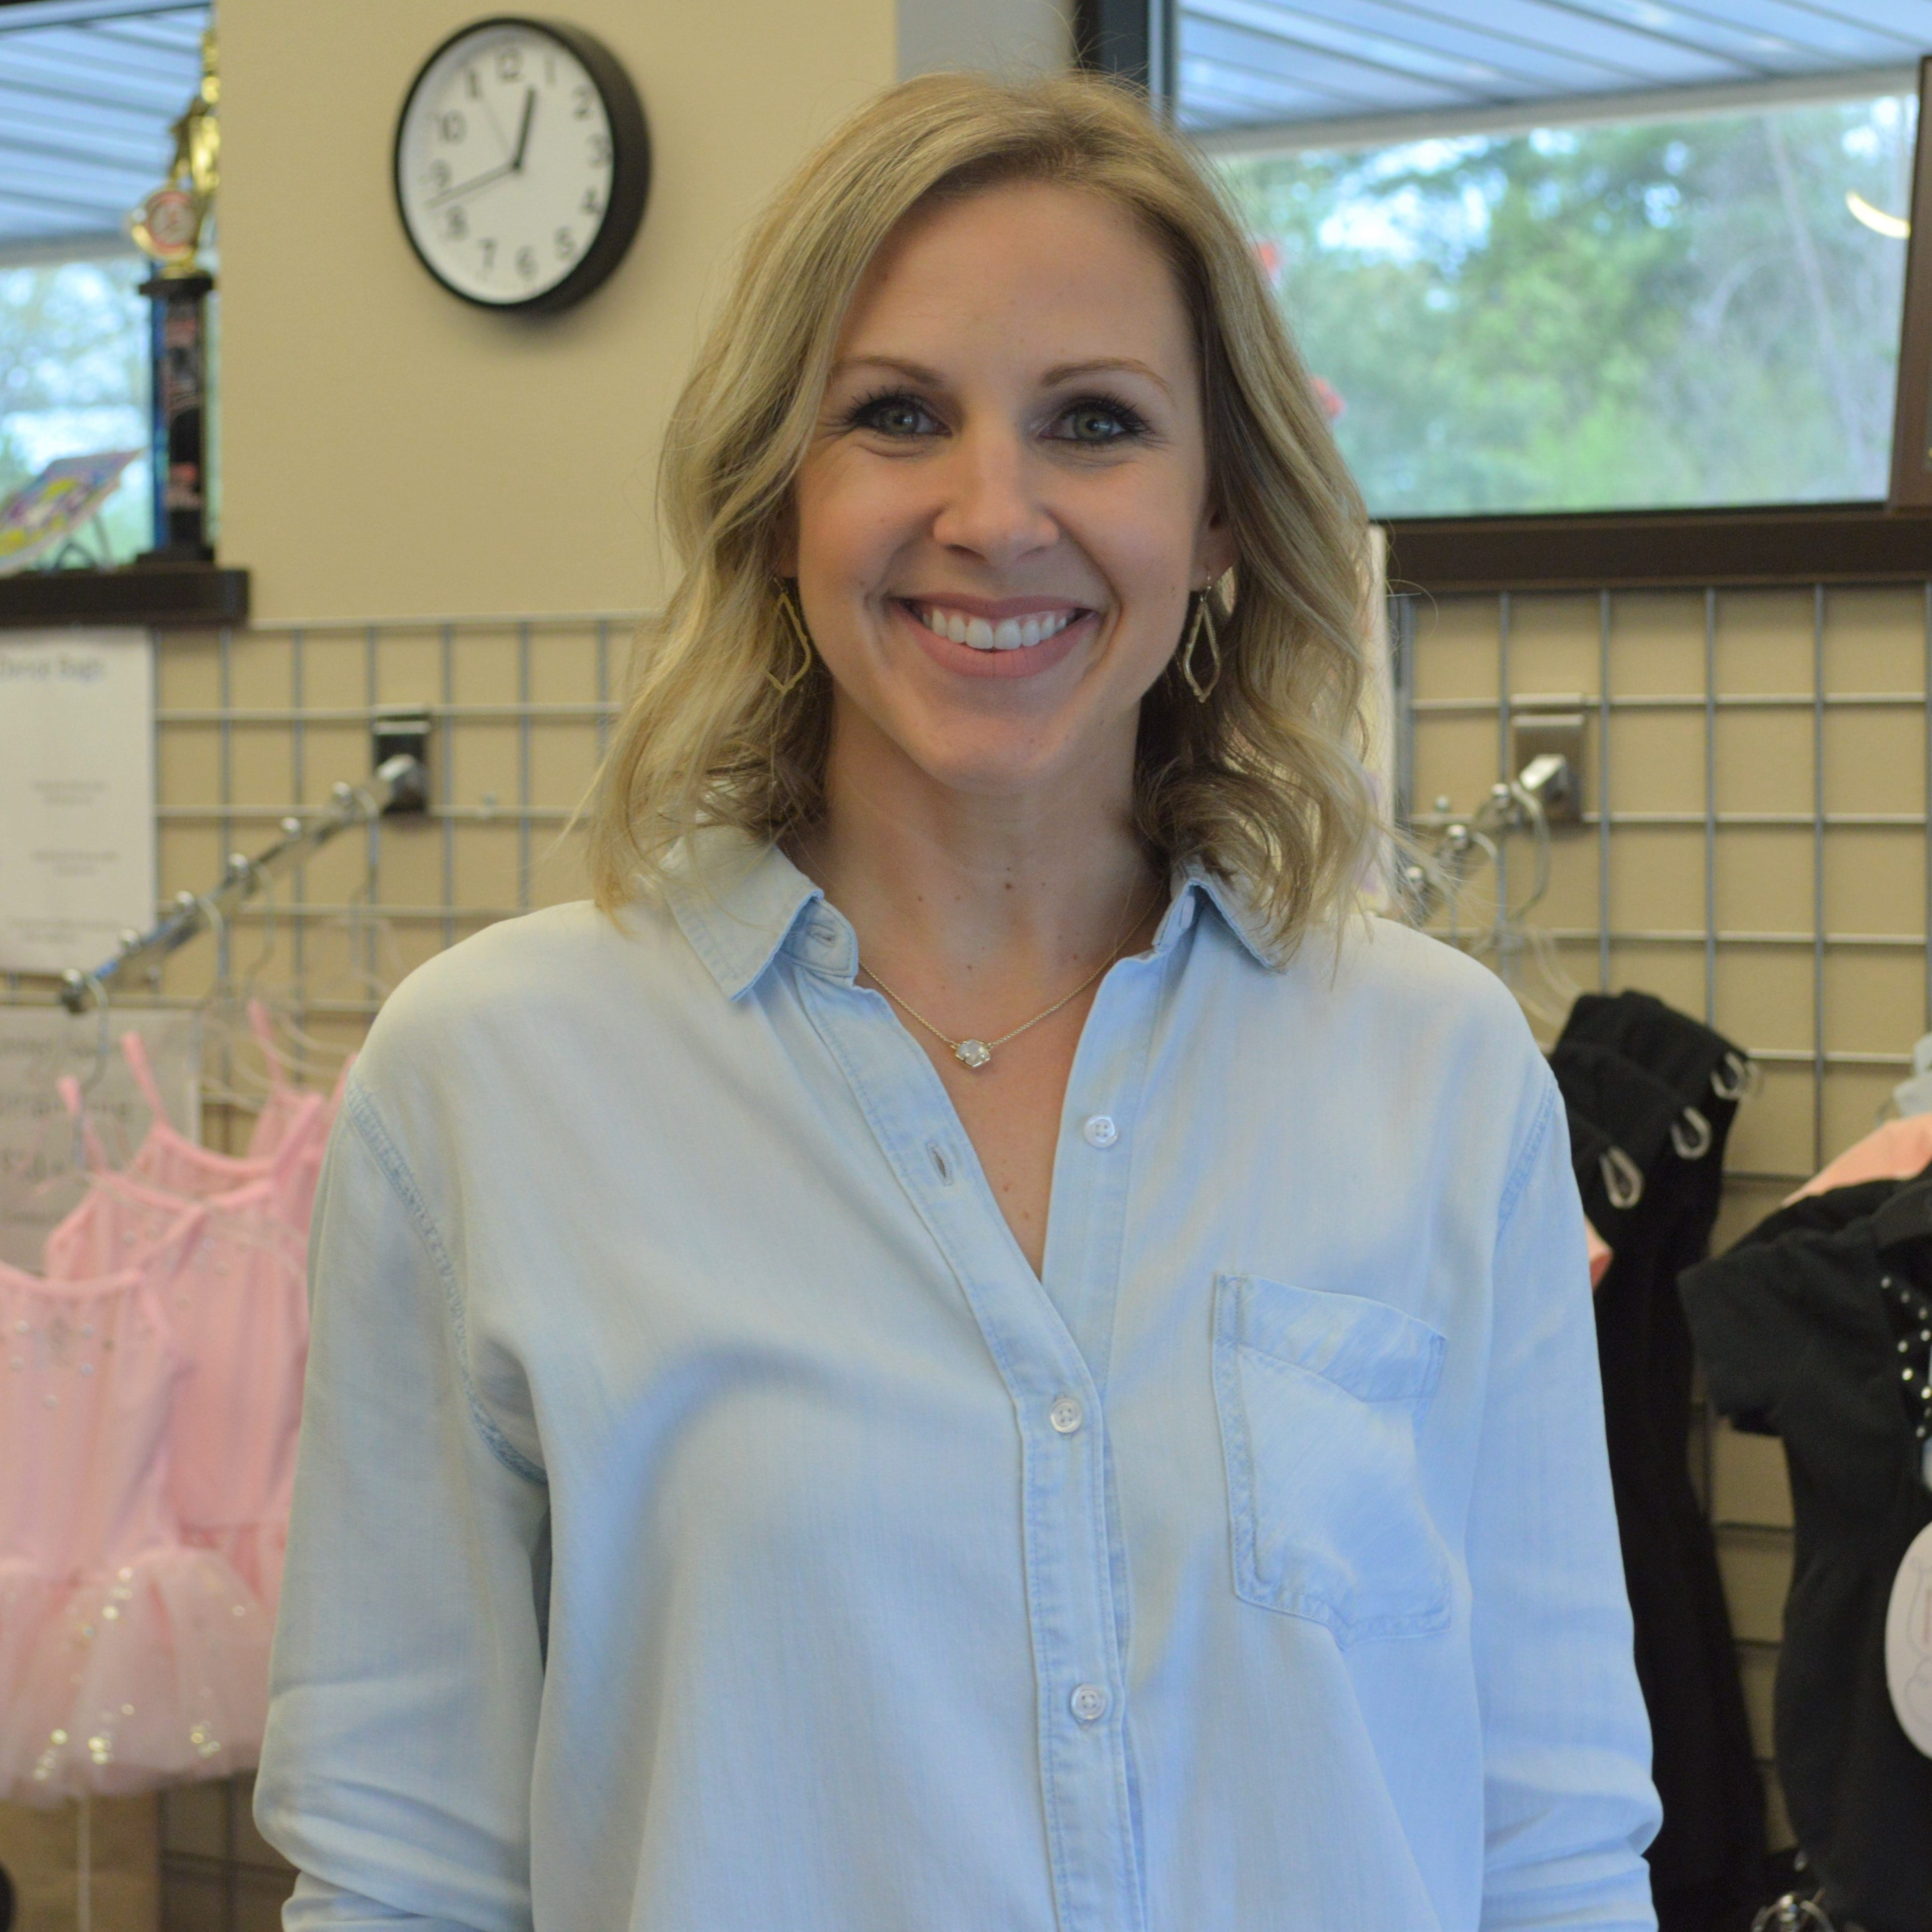 This Oak Creek native used to teach dance in her parents' yard. Now she runs a small business empire.